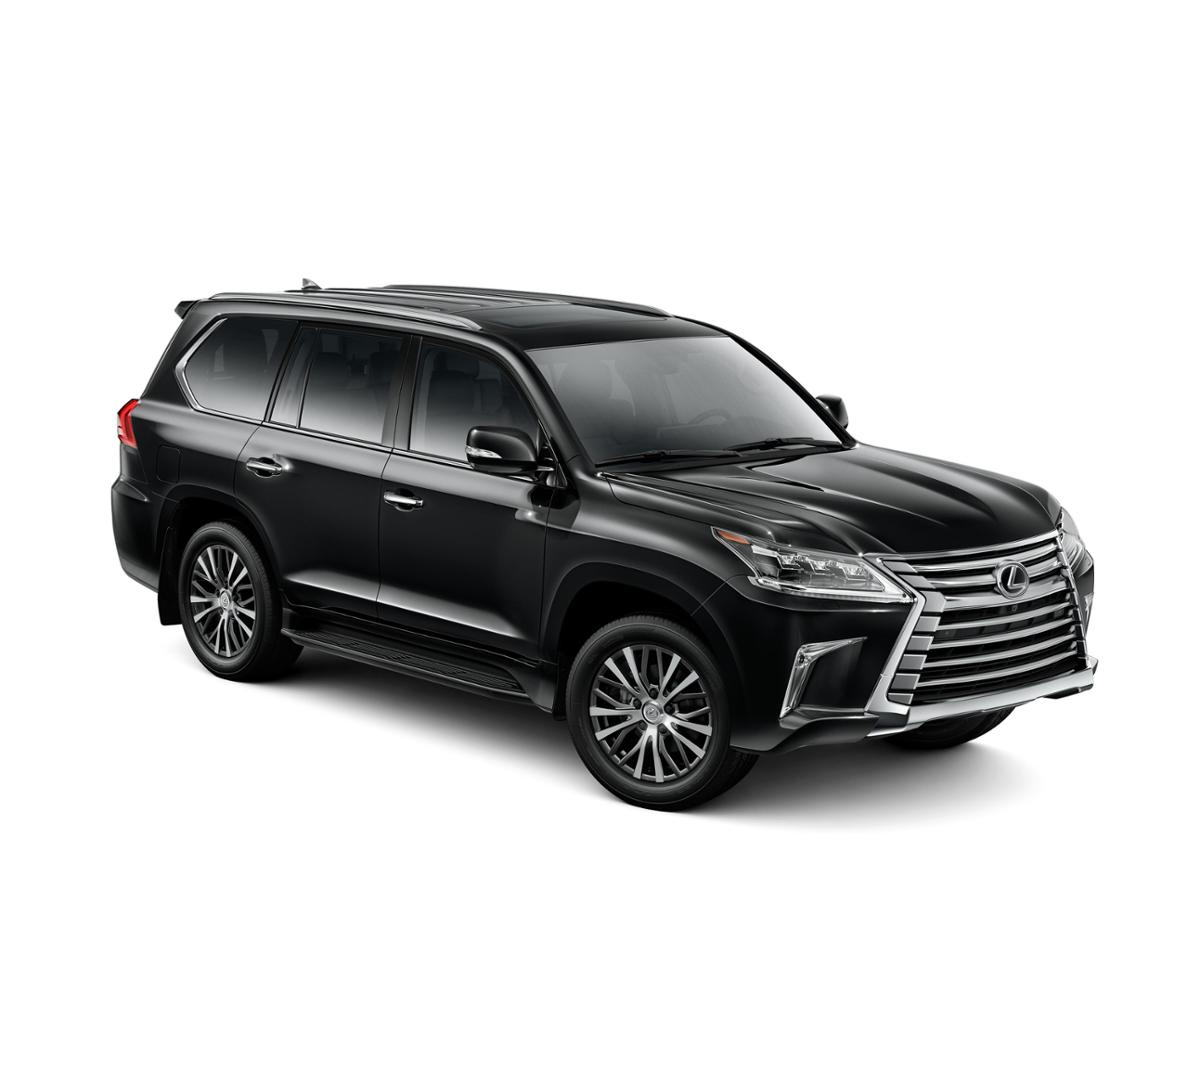 2017 lexus lx 570 for sale in cicero jtjhy7ax2h4231354 burdick lexus. Black Bedroom Furniture Sets. Home Design Ideas